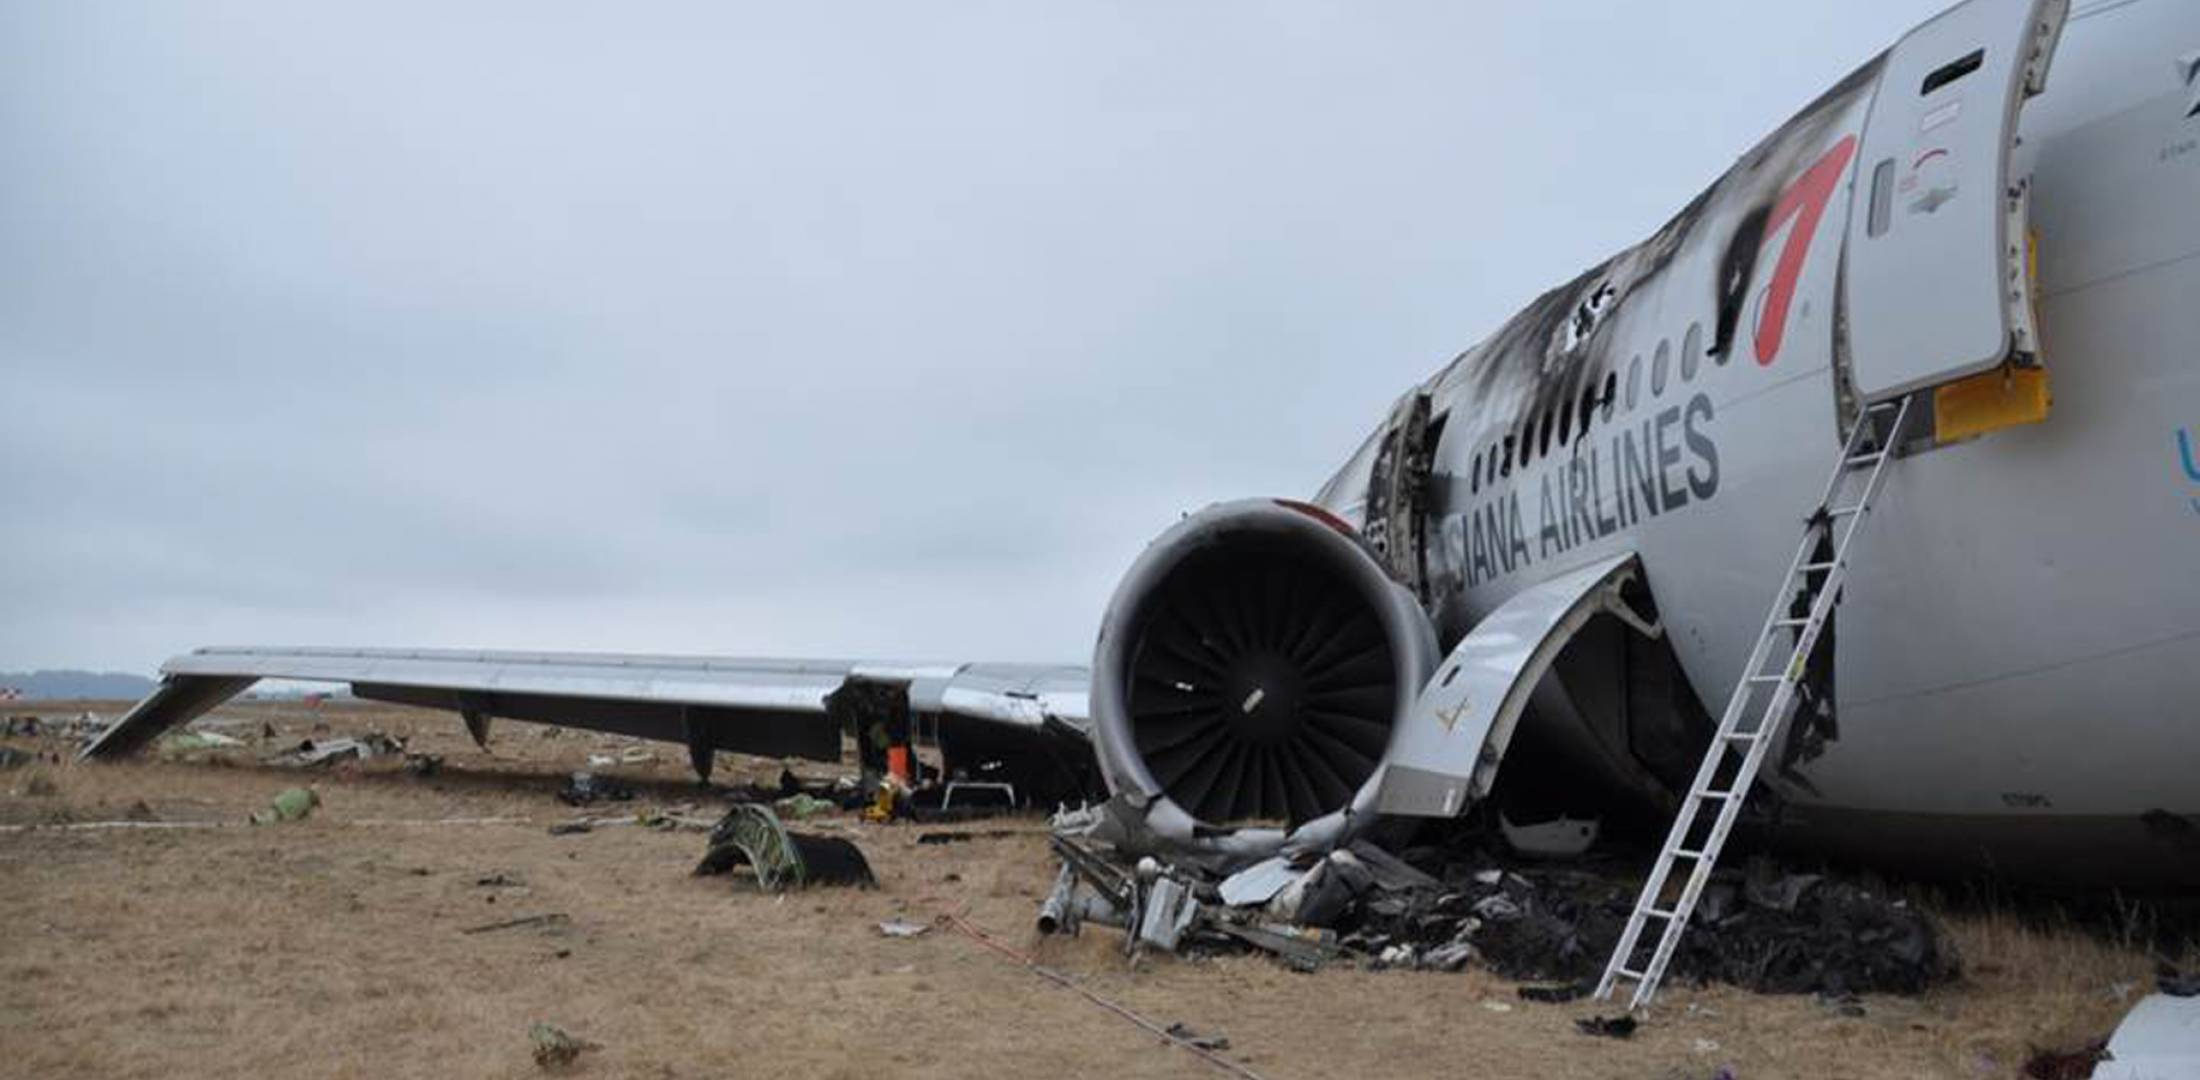 The wreckage of Asiana Airlines Flight 214, a Boeing 777, lies at San  Francisco International Airport following the July 6 crash. (Photo: NTSB)